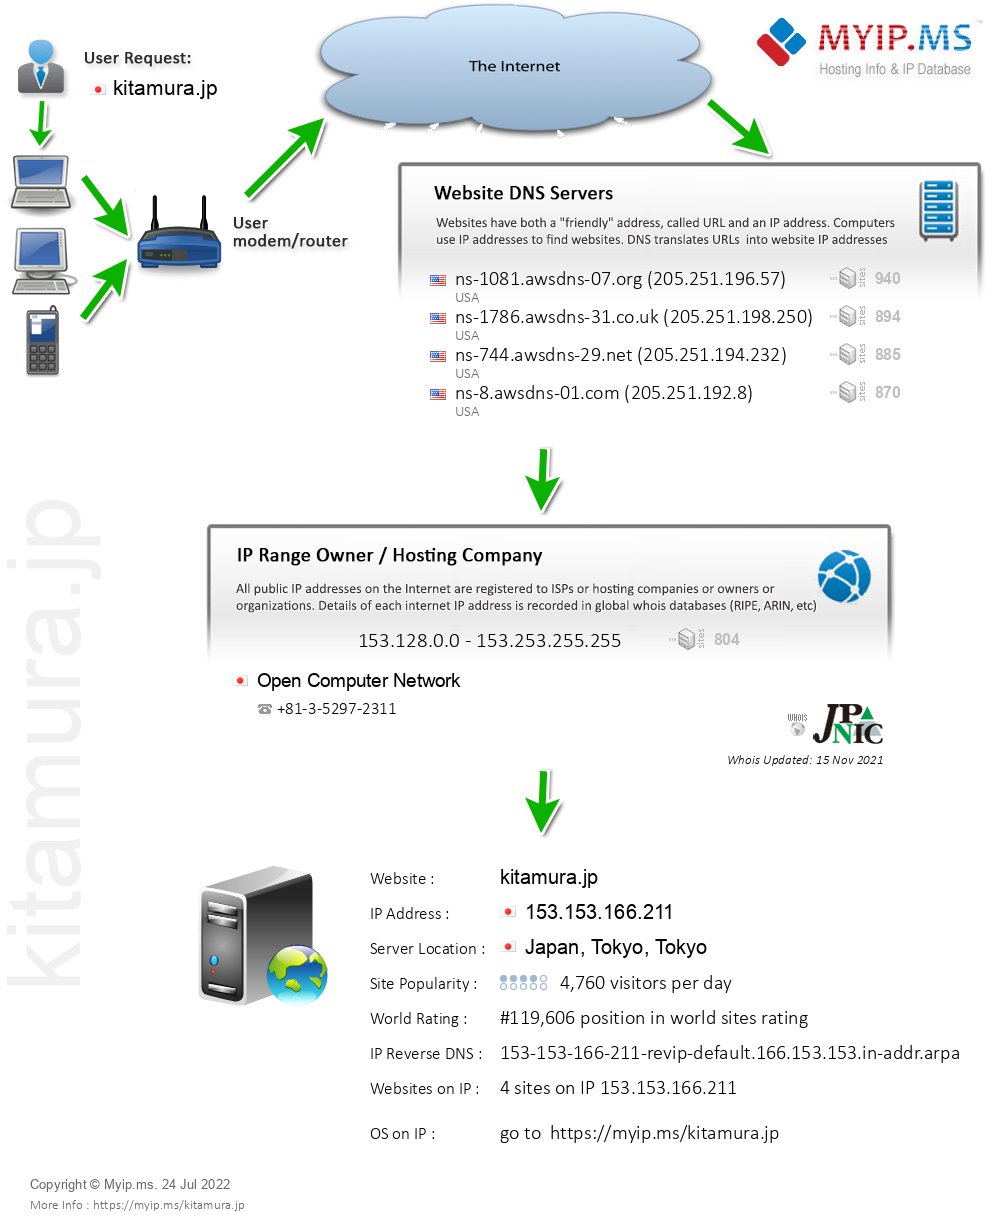 Kitamura.jp - Website Hosting Visual IP Diagram